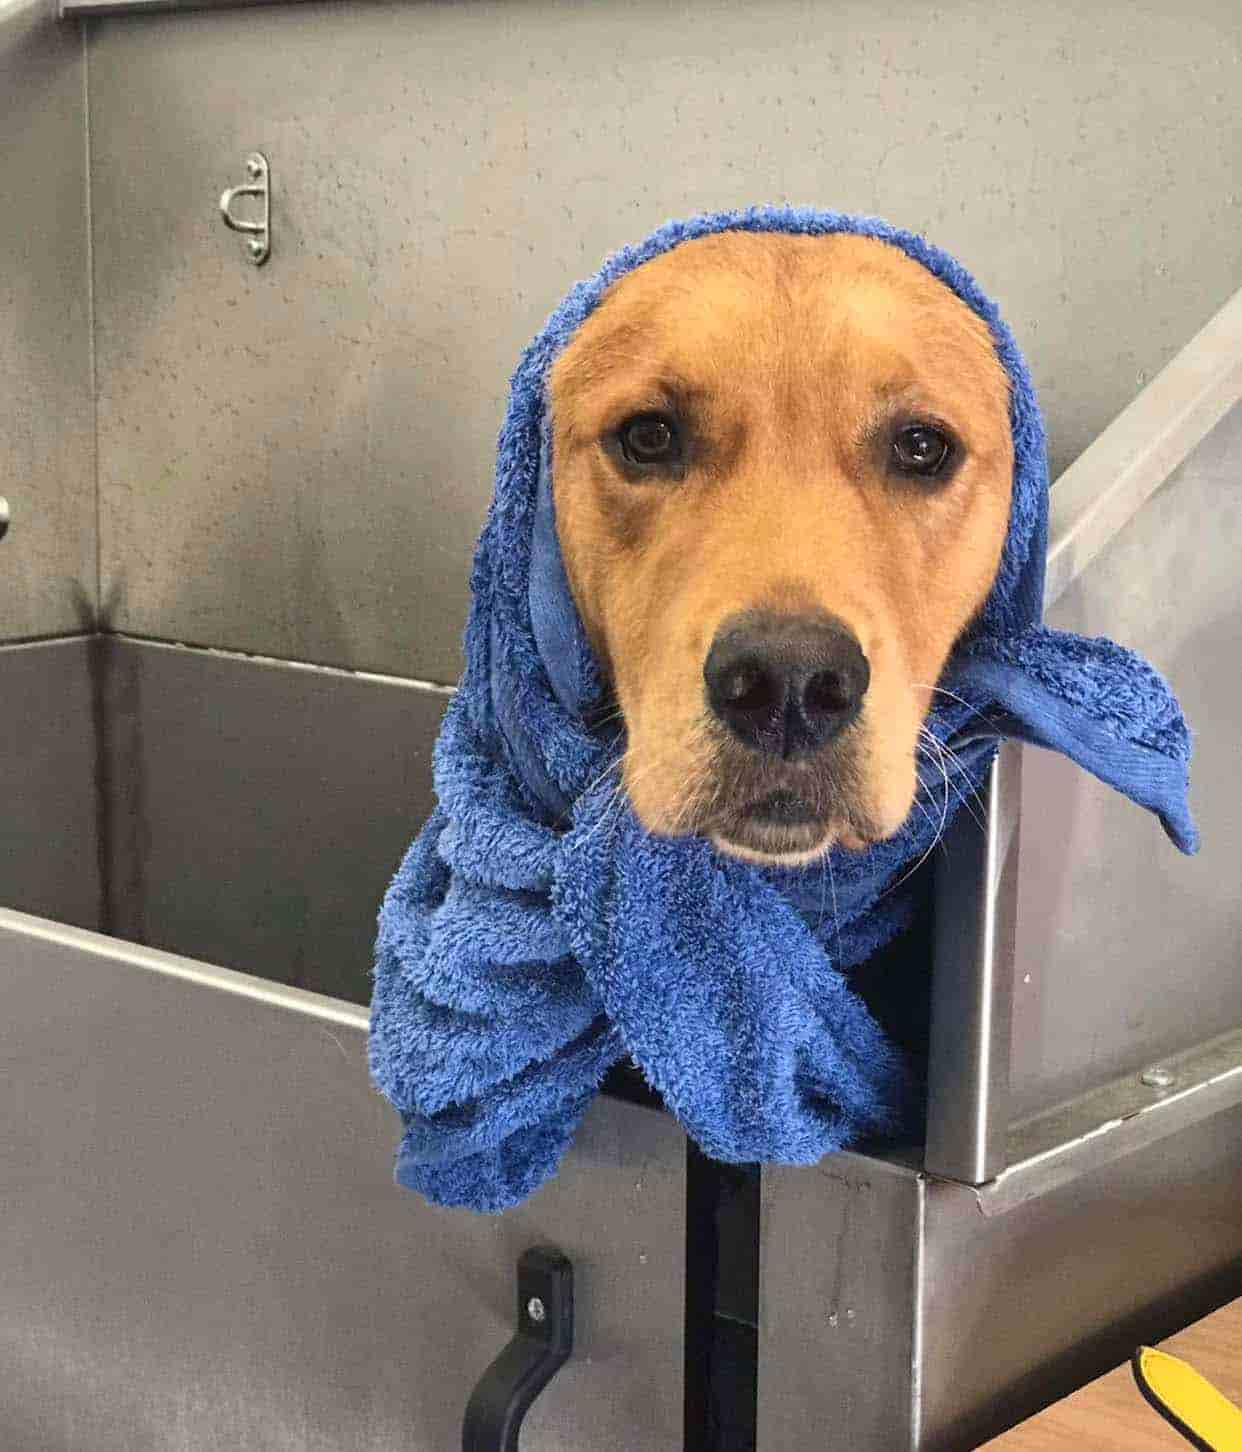 dog having the wash and go treatment